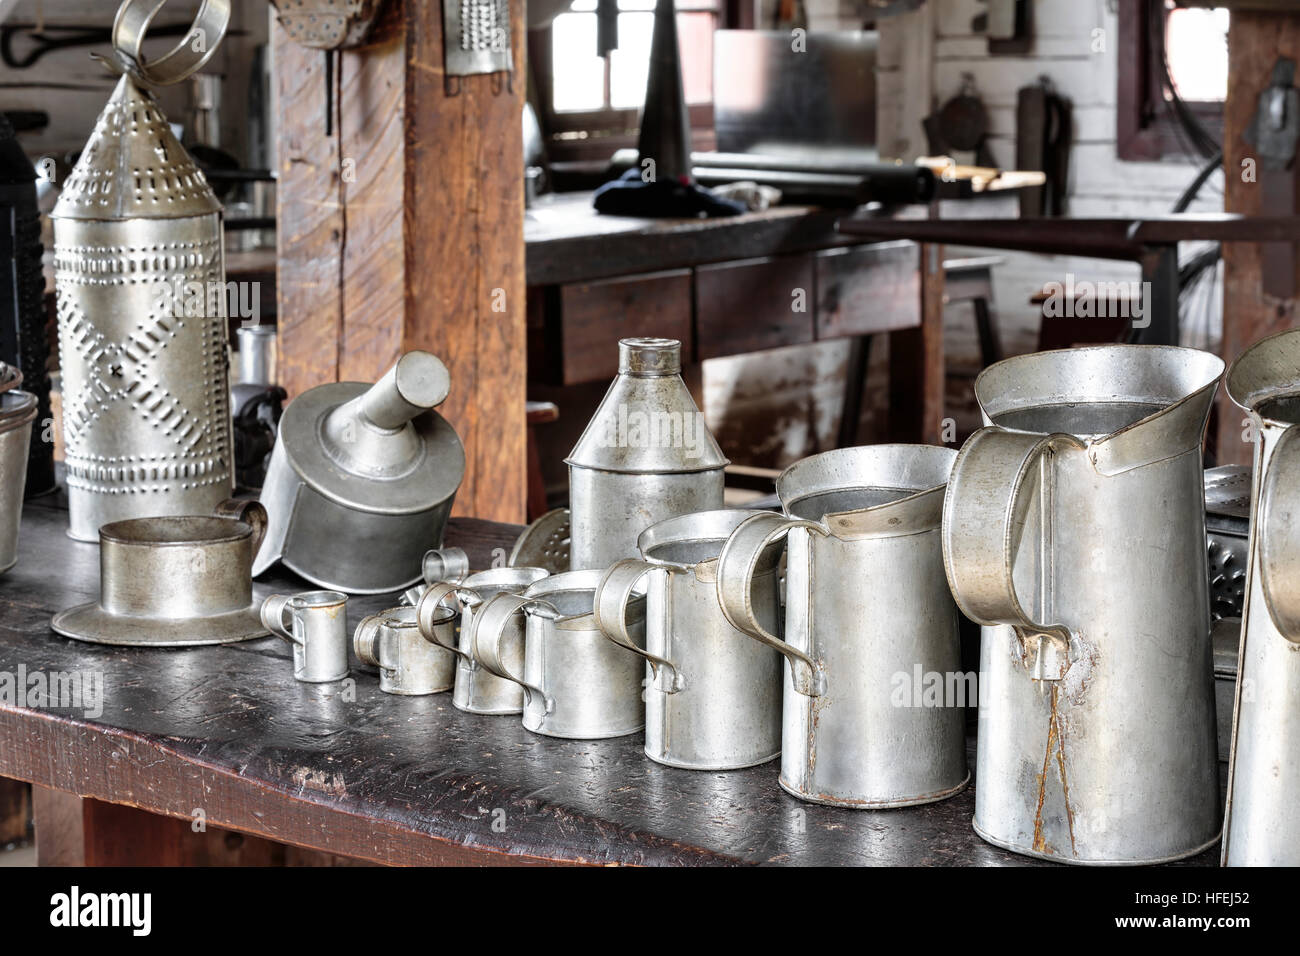 Tin cups, close up view - Stock Image